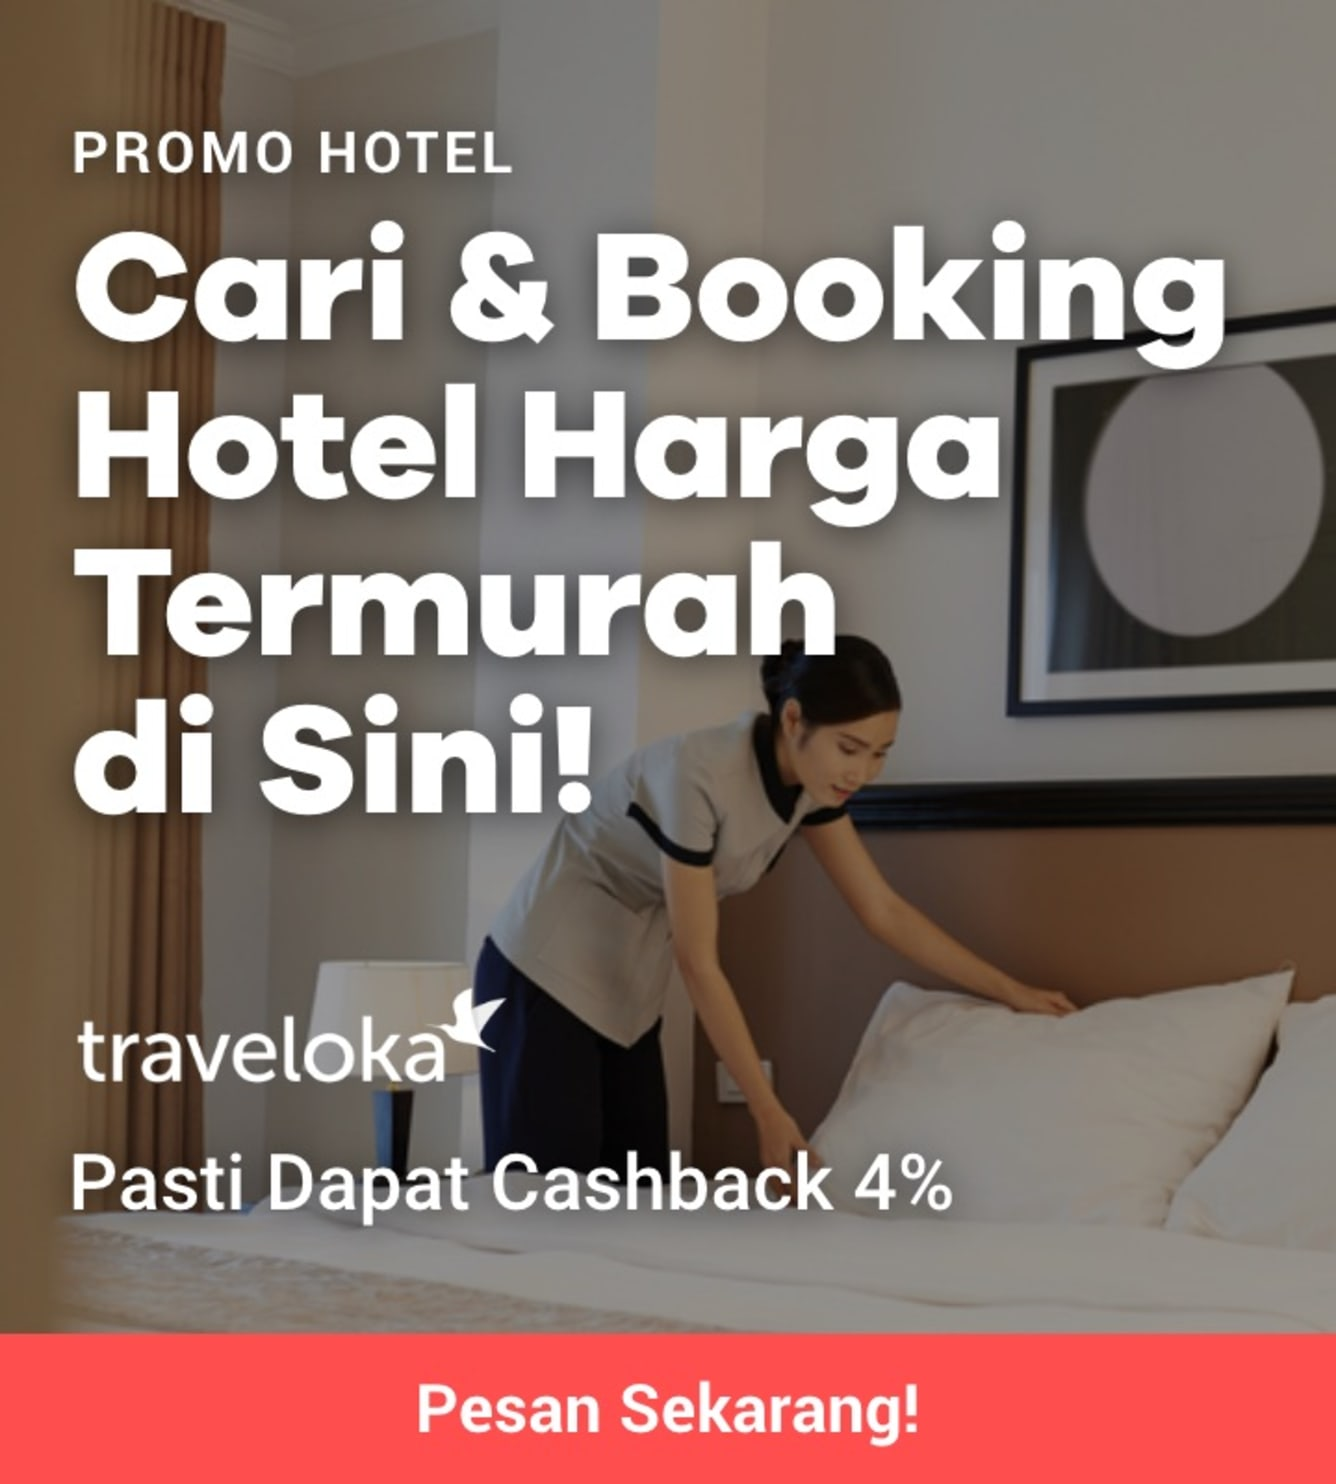 Week 38 - Promo Traveloka